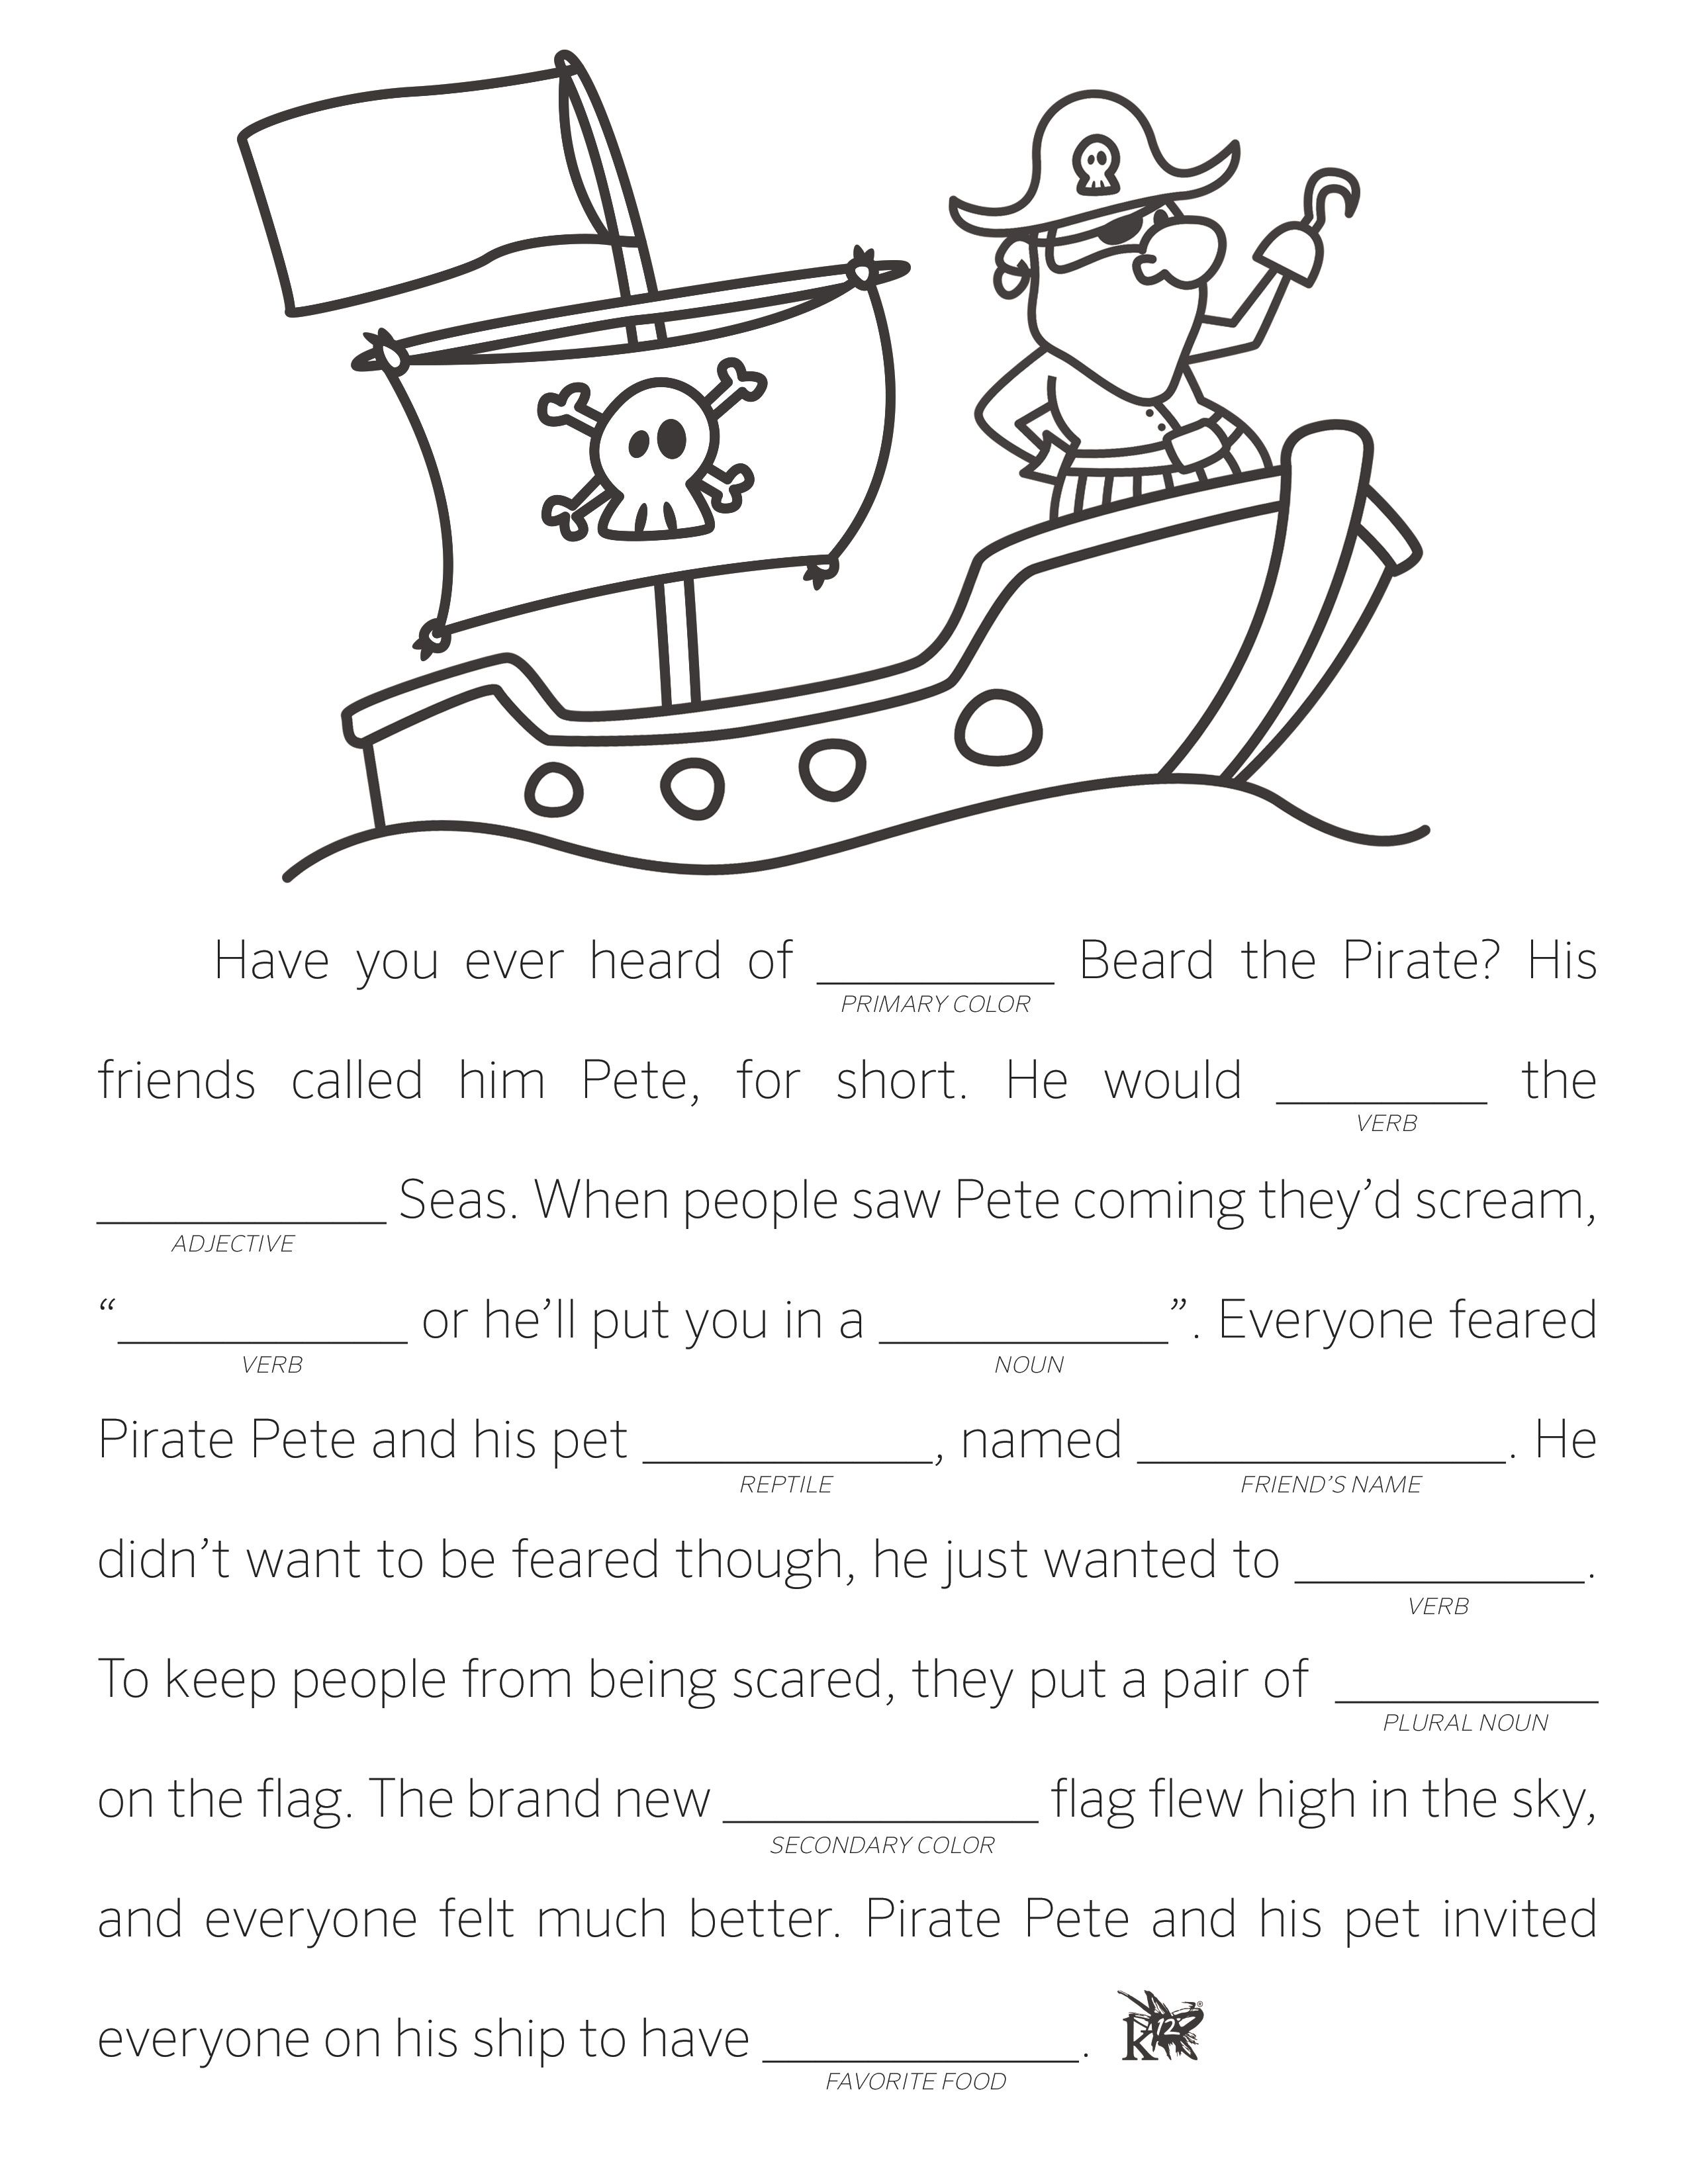 graphic relating to Funny Fill in the Blank Stories Printable referred to as Deliver Your Particular Fill in just the Blank Reports Language Arts